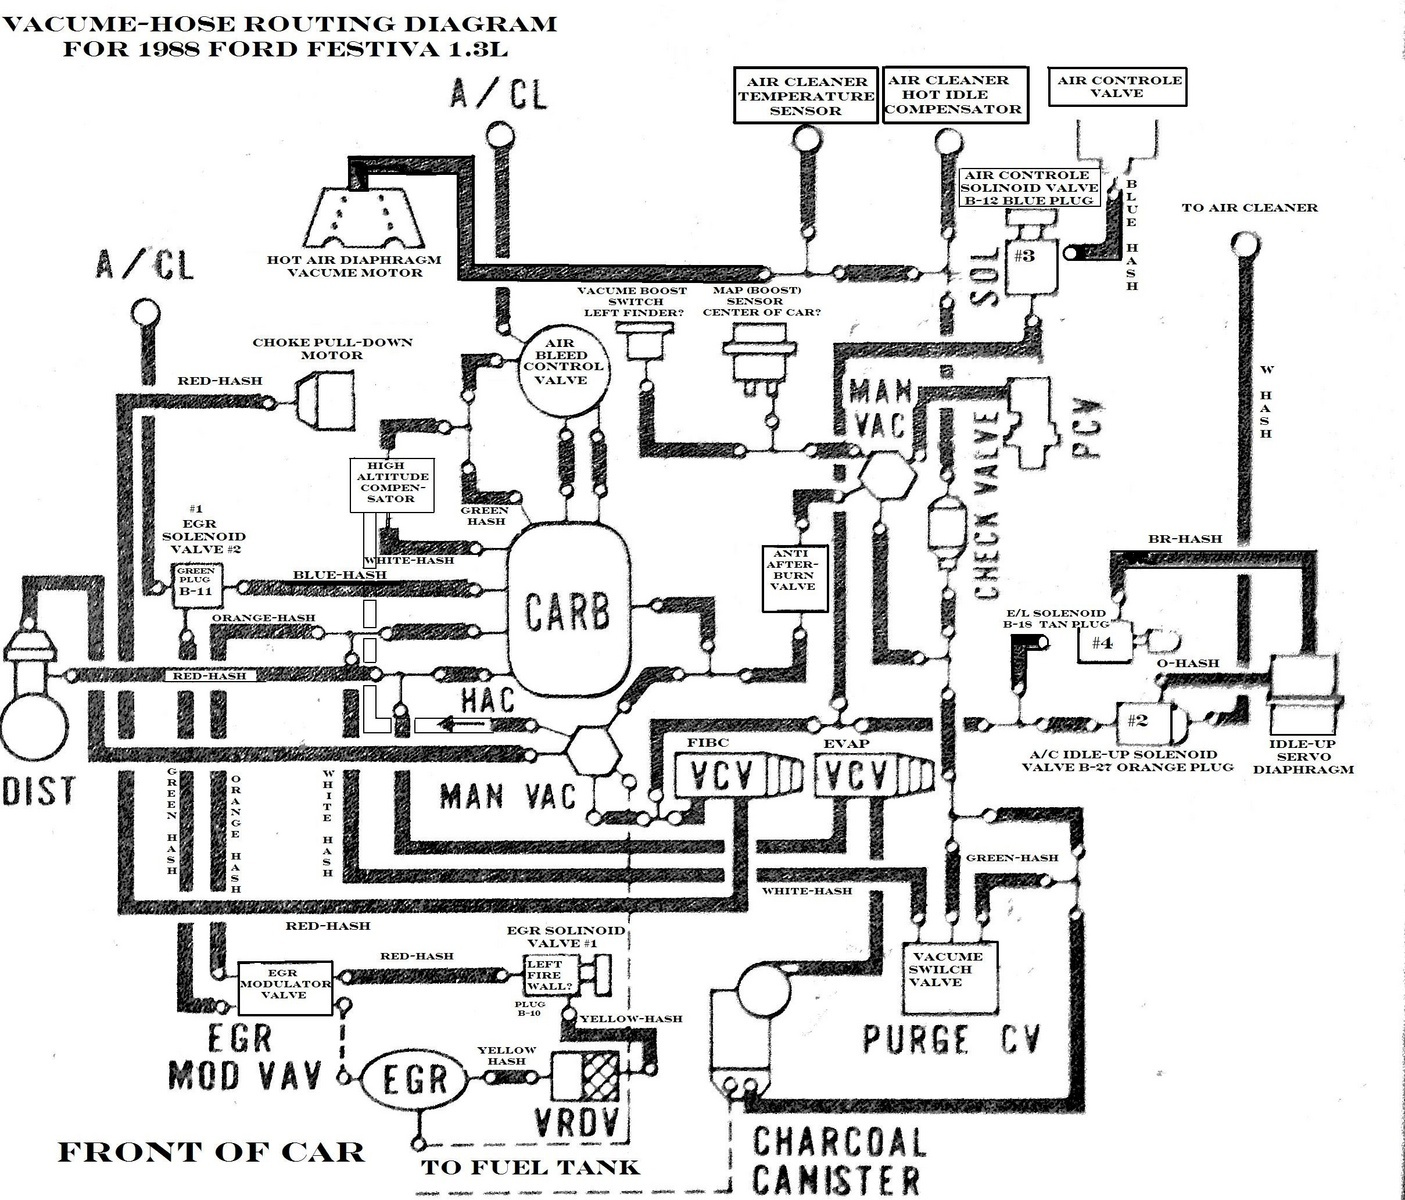 Free Ford Wiring Diagrams 1988 Archive Of Automotive Diagram 1989 F350 Blog About Rh Clares Driving Co Uk